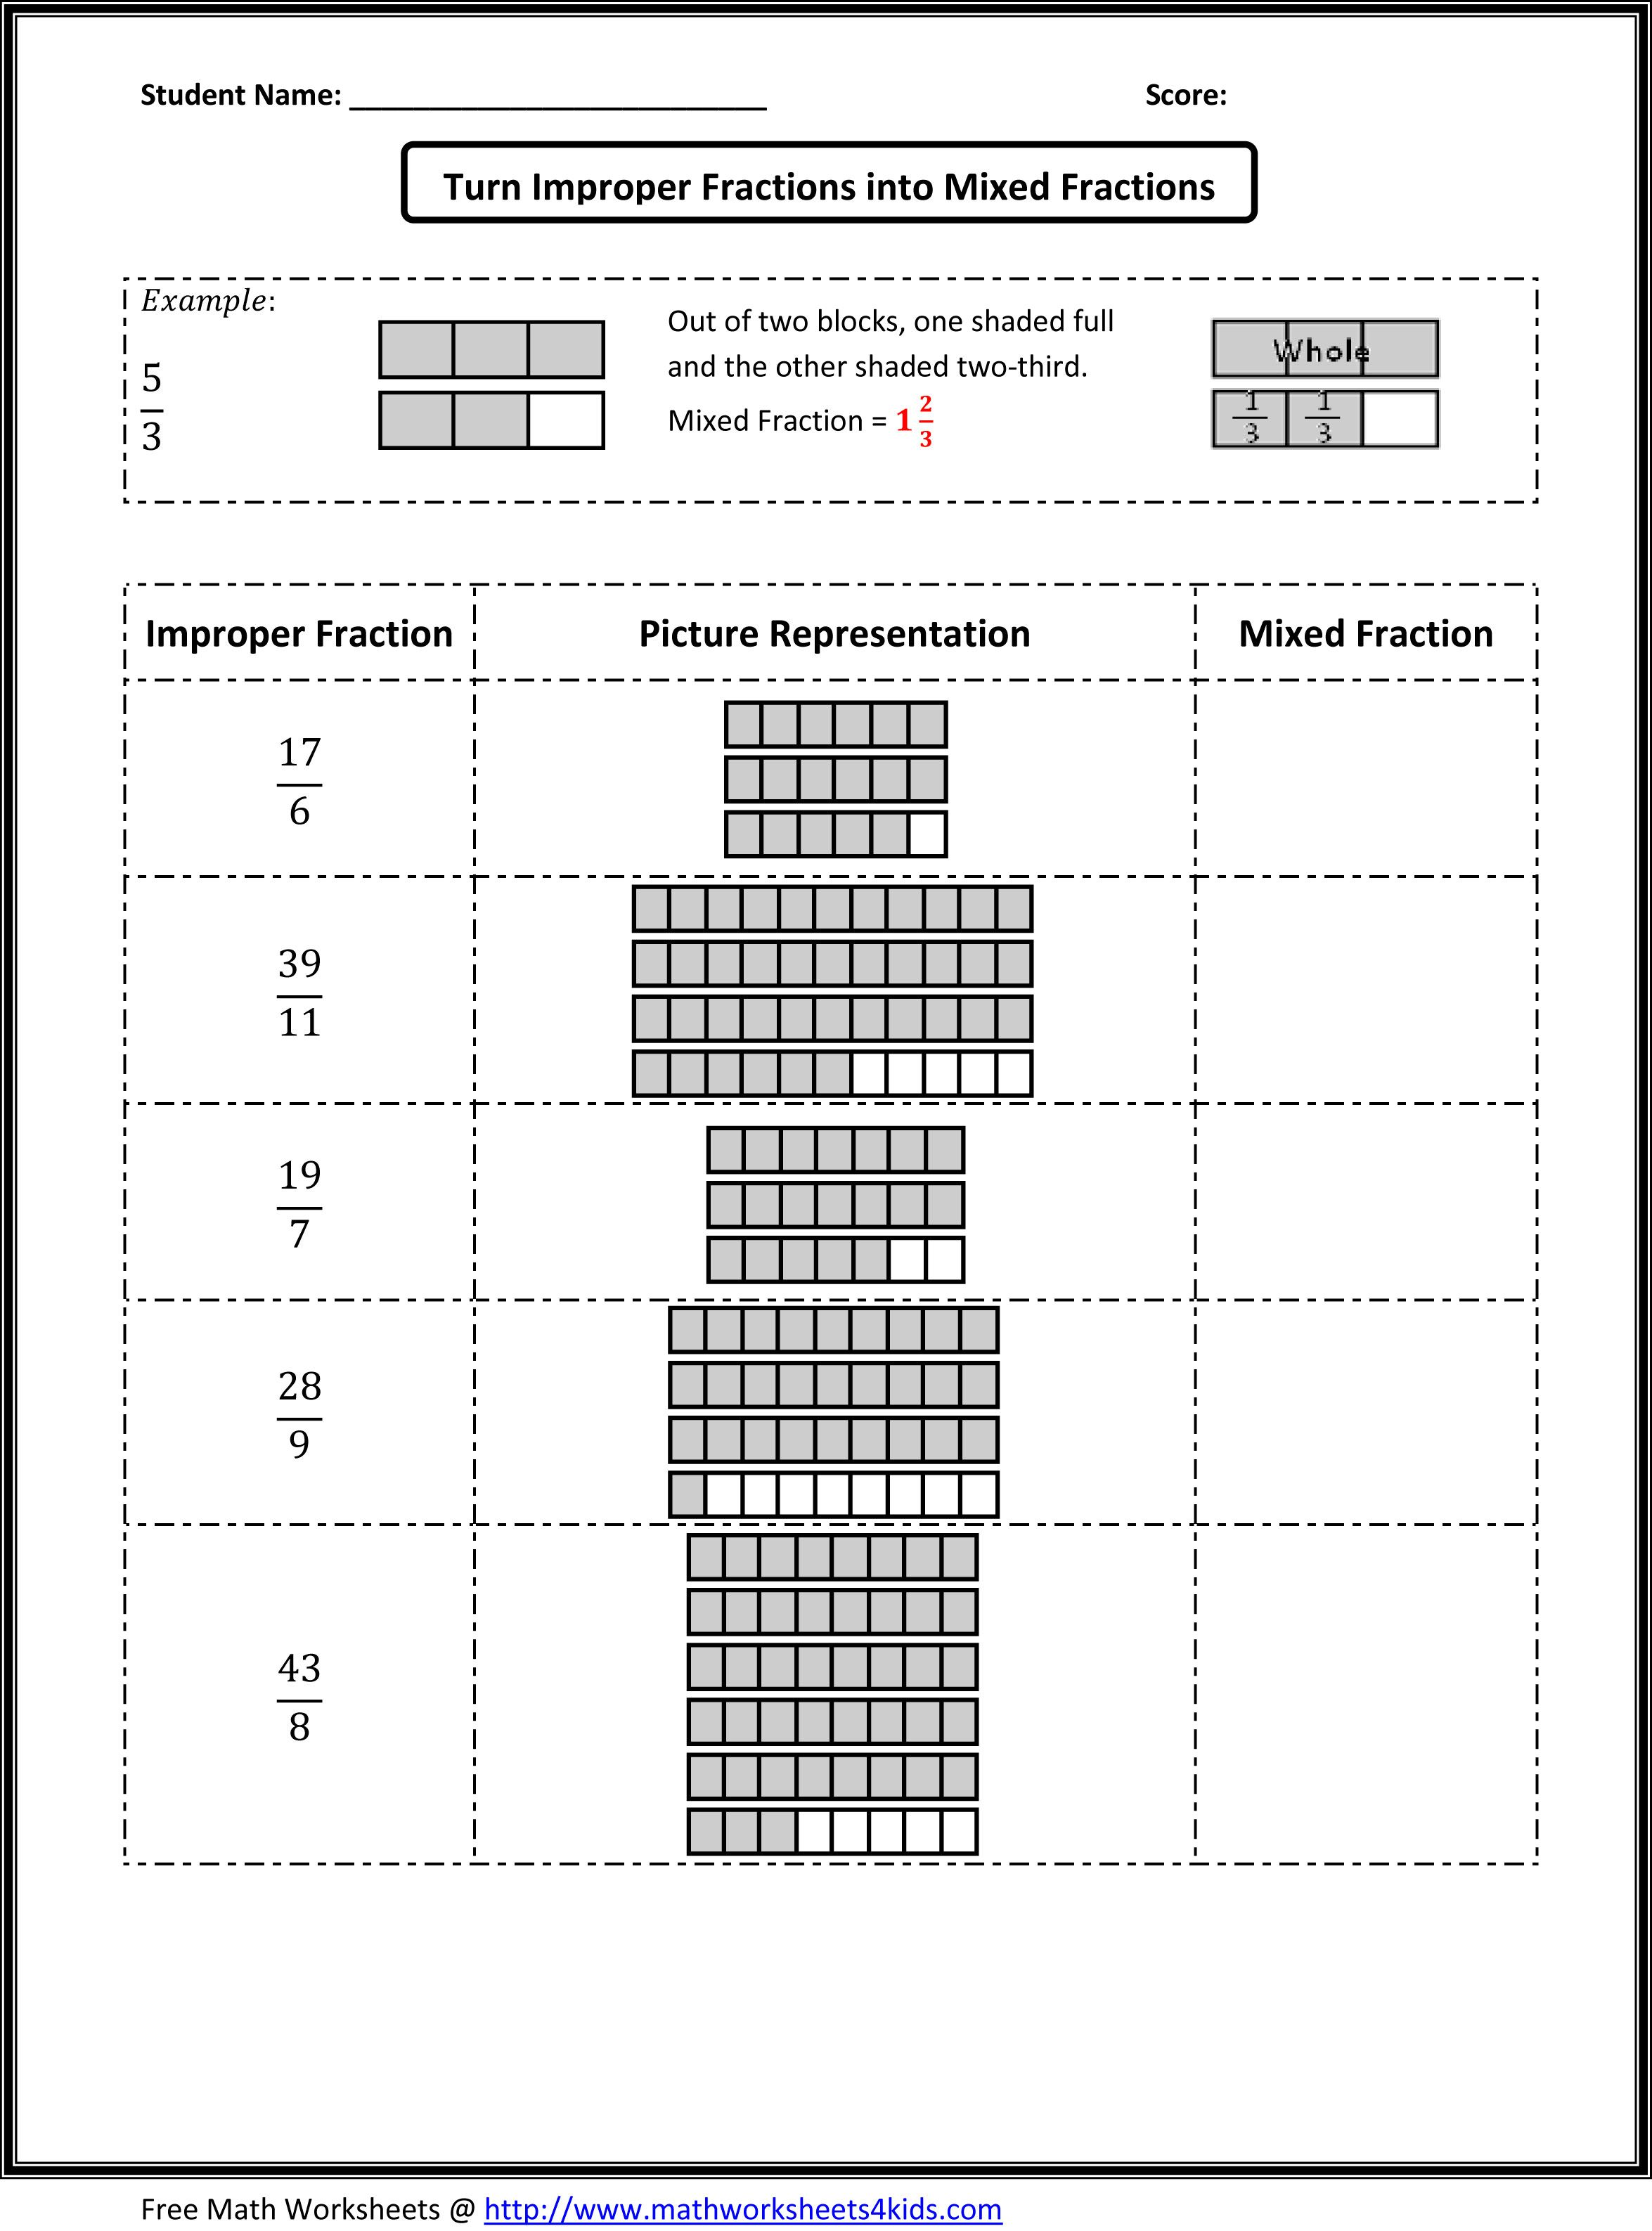 Types of Fractions Worksheets   Fractions worksheets [ 3174 x 2350 Pixel ]